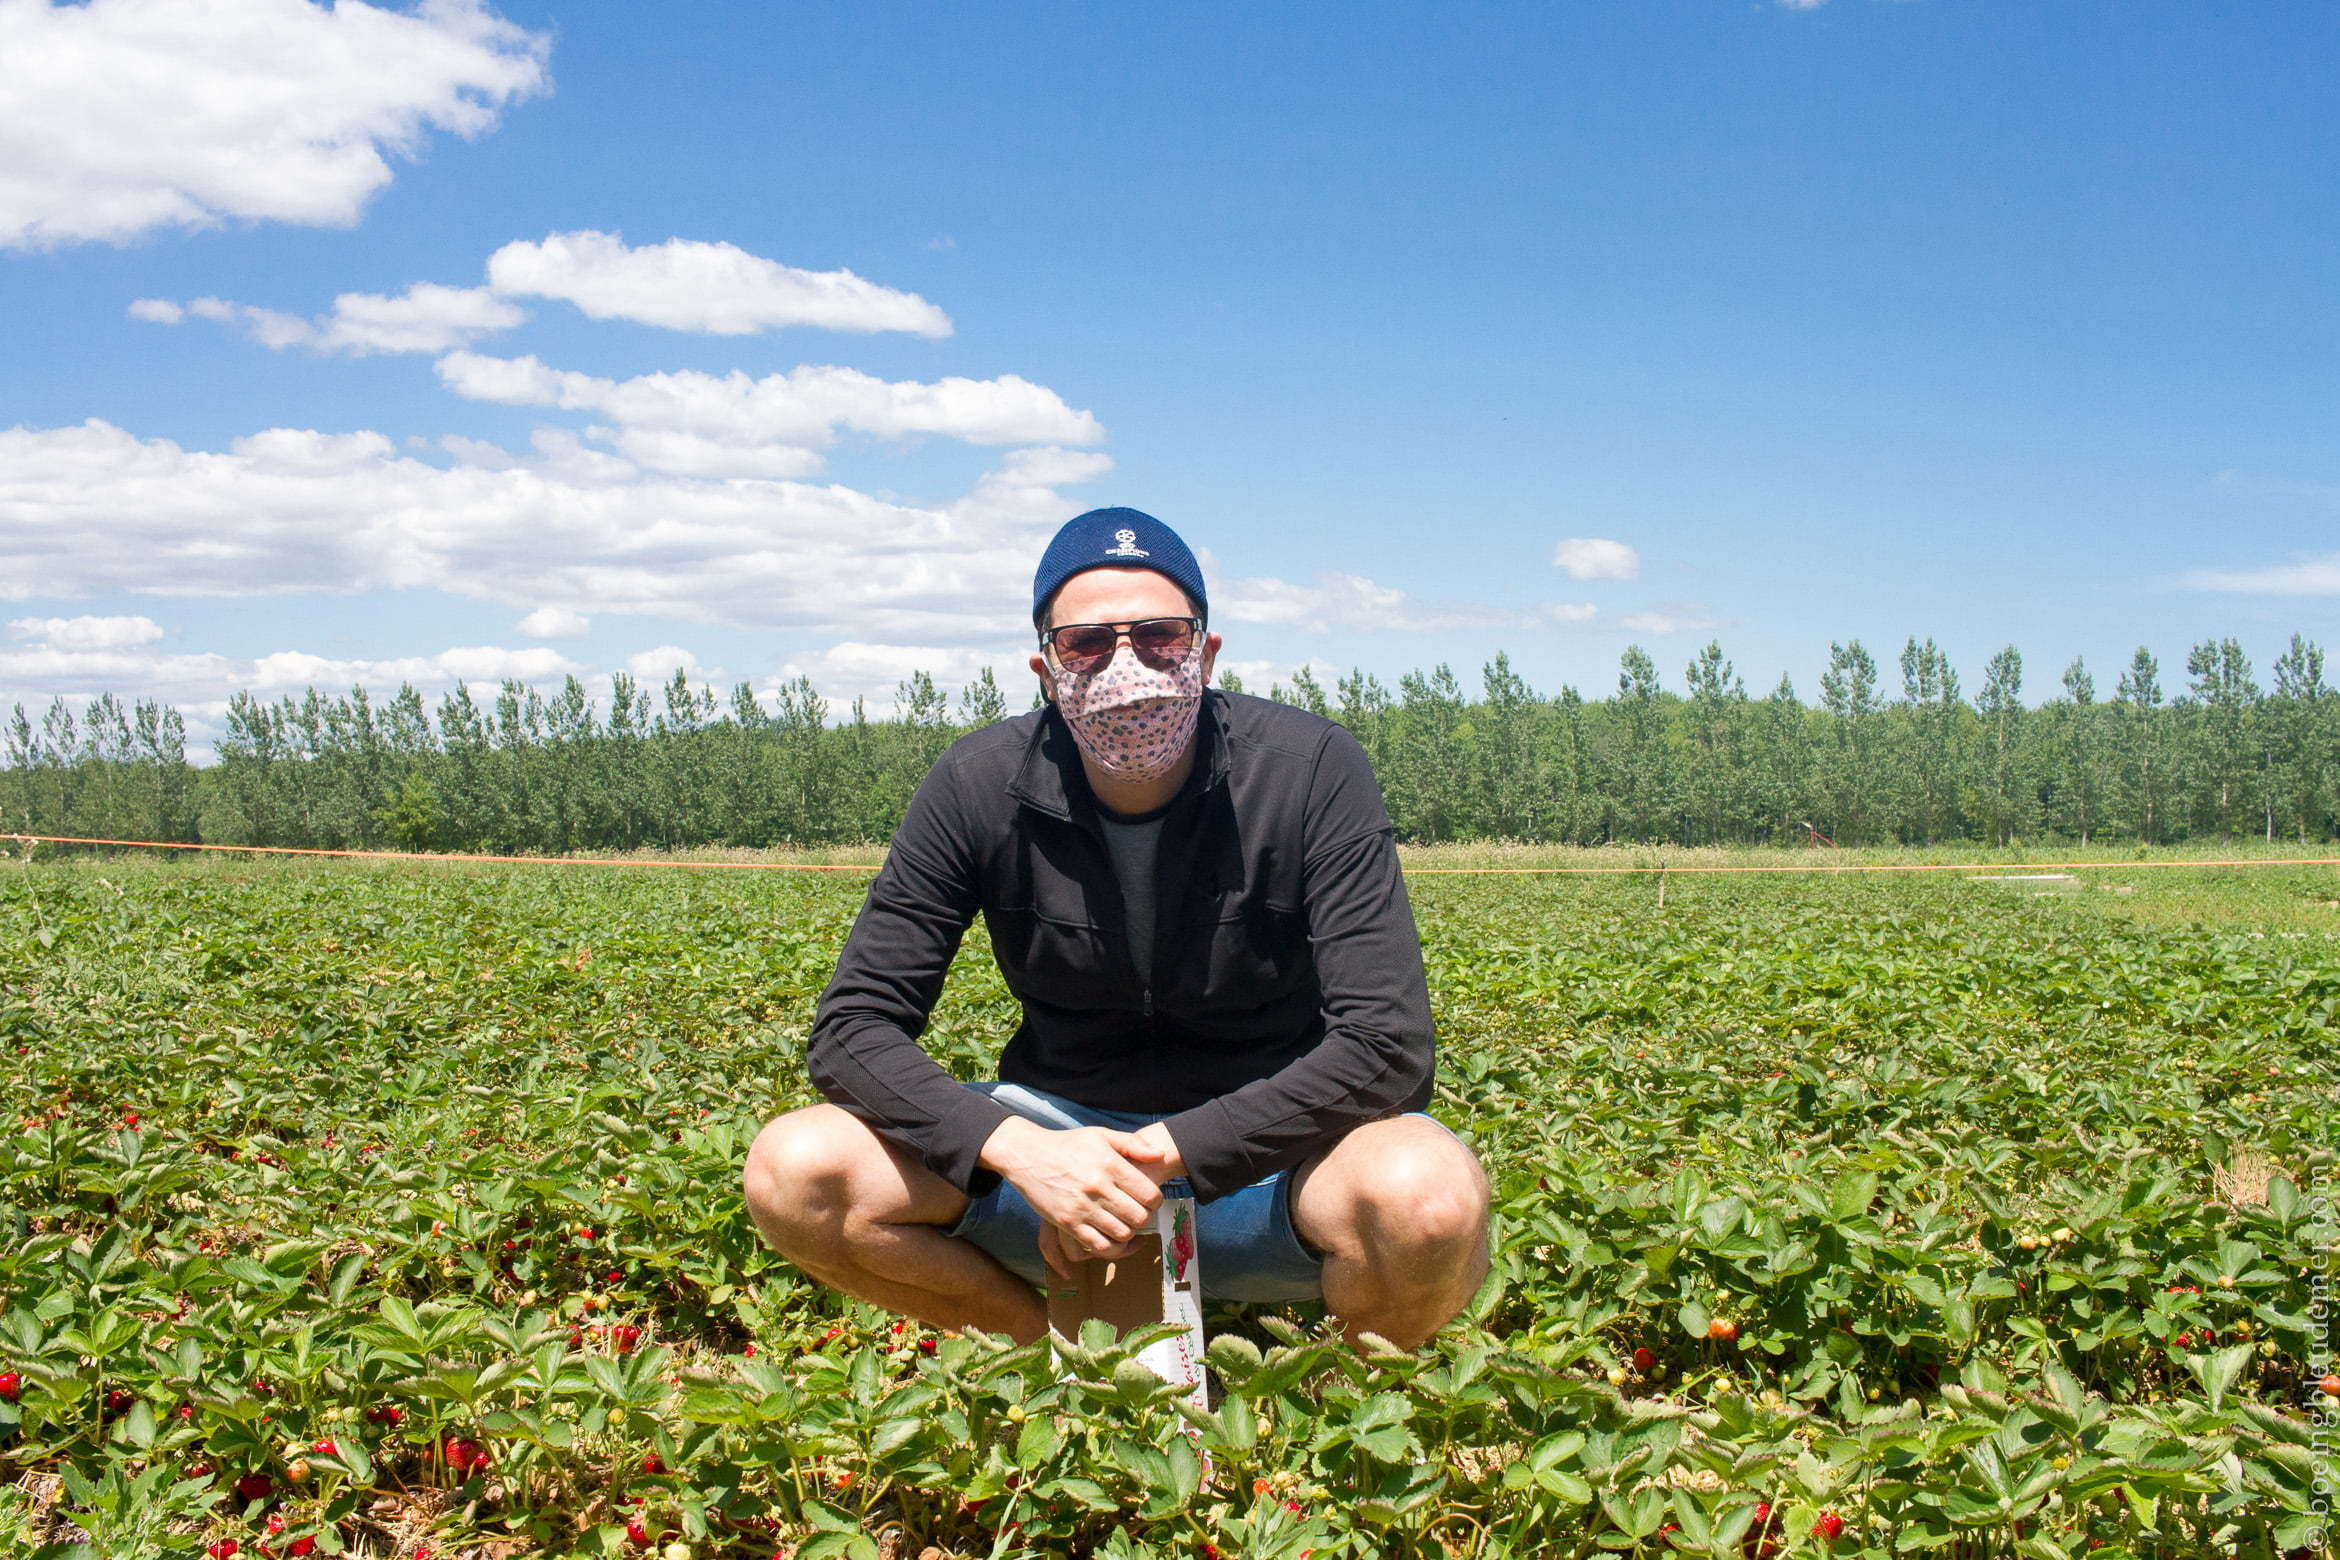 Strawberry Picking in Lavaltrie: COVID-19 protection